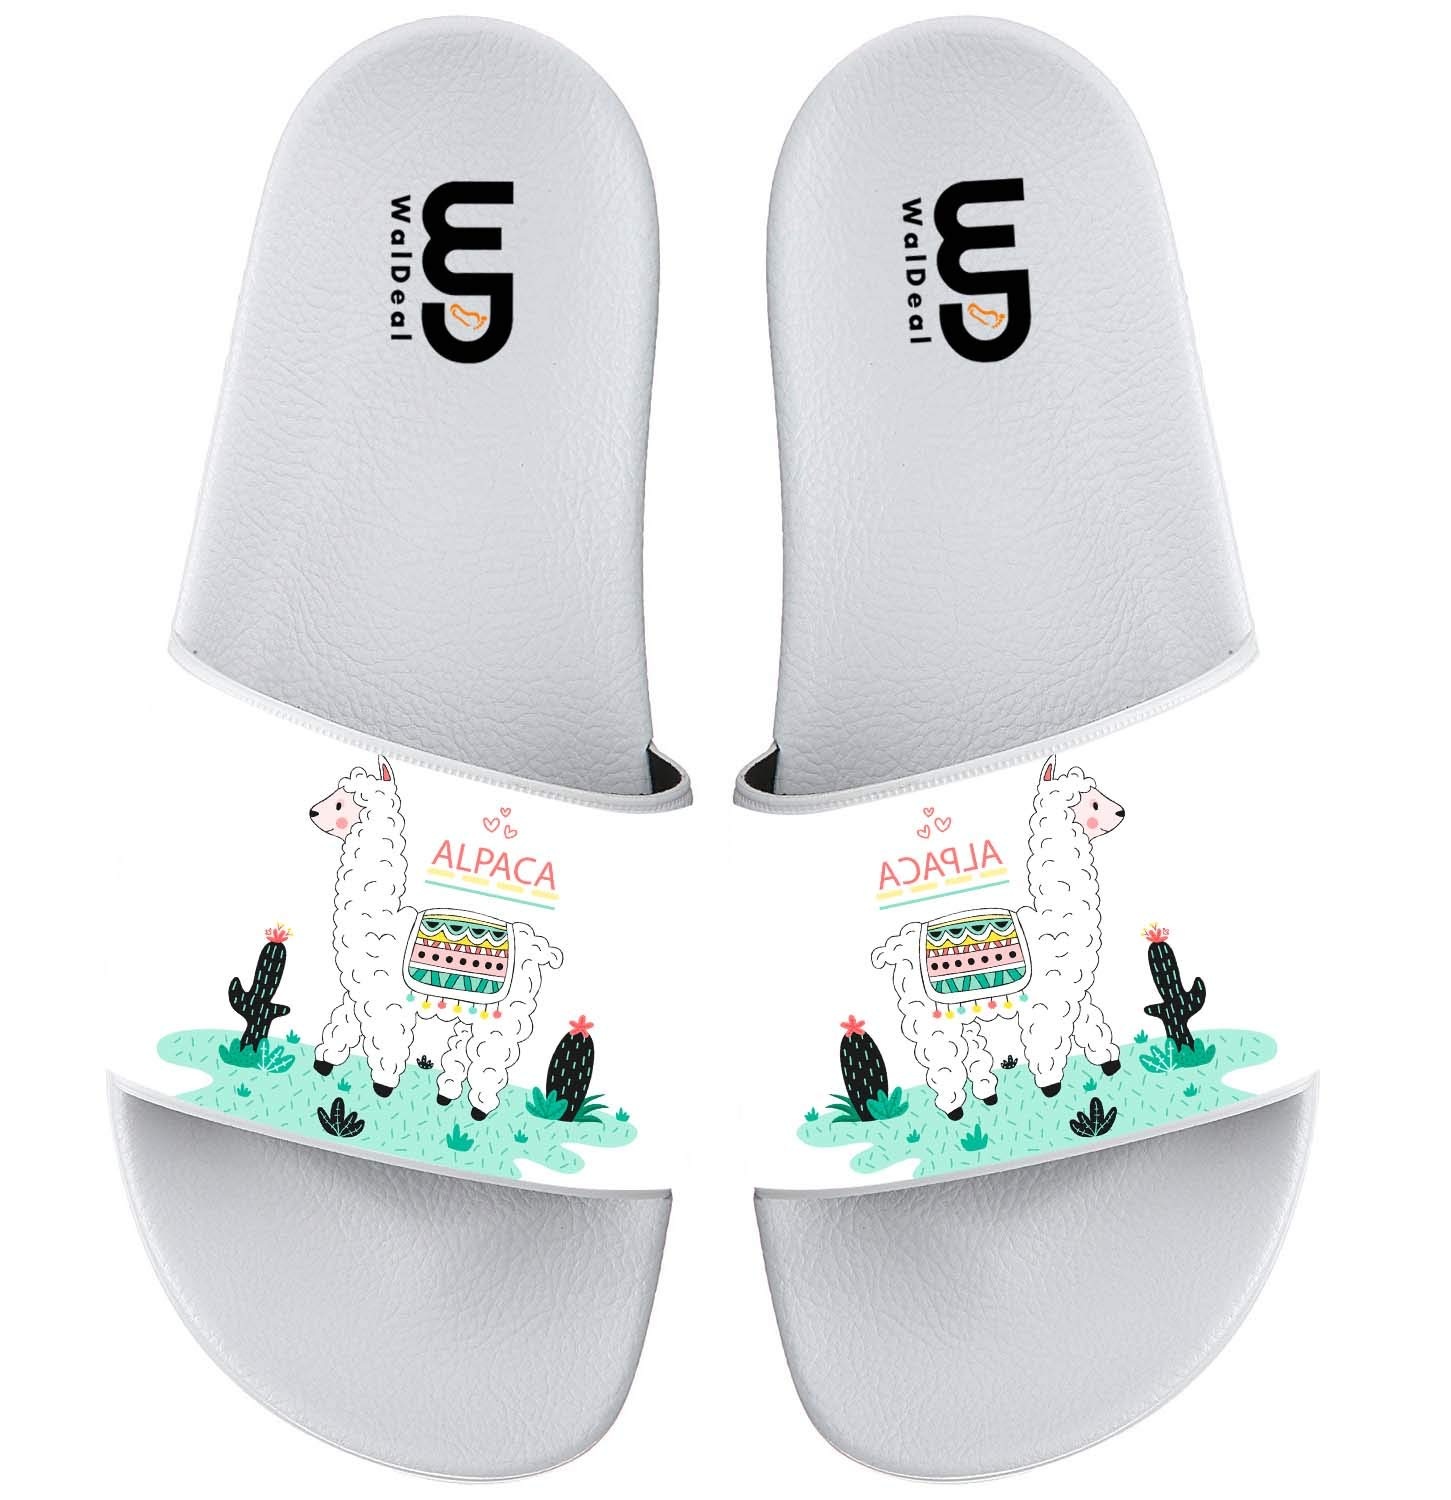 Lovely Hand Drawn Alpaca Llama Summer Slide Slippers For Girl Boy Kid Non-Slip Sandal Shoes size 12